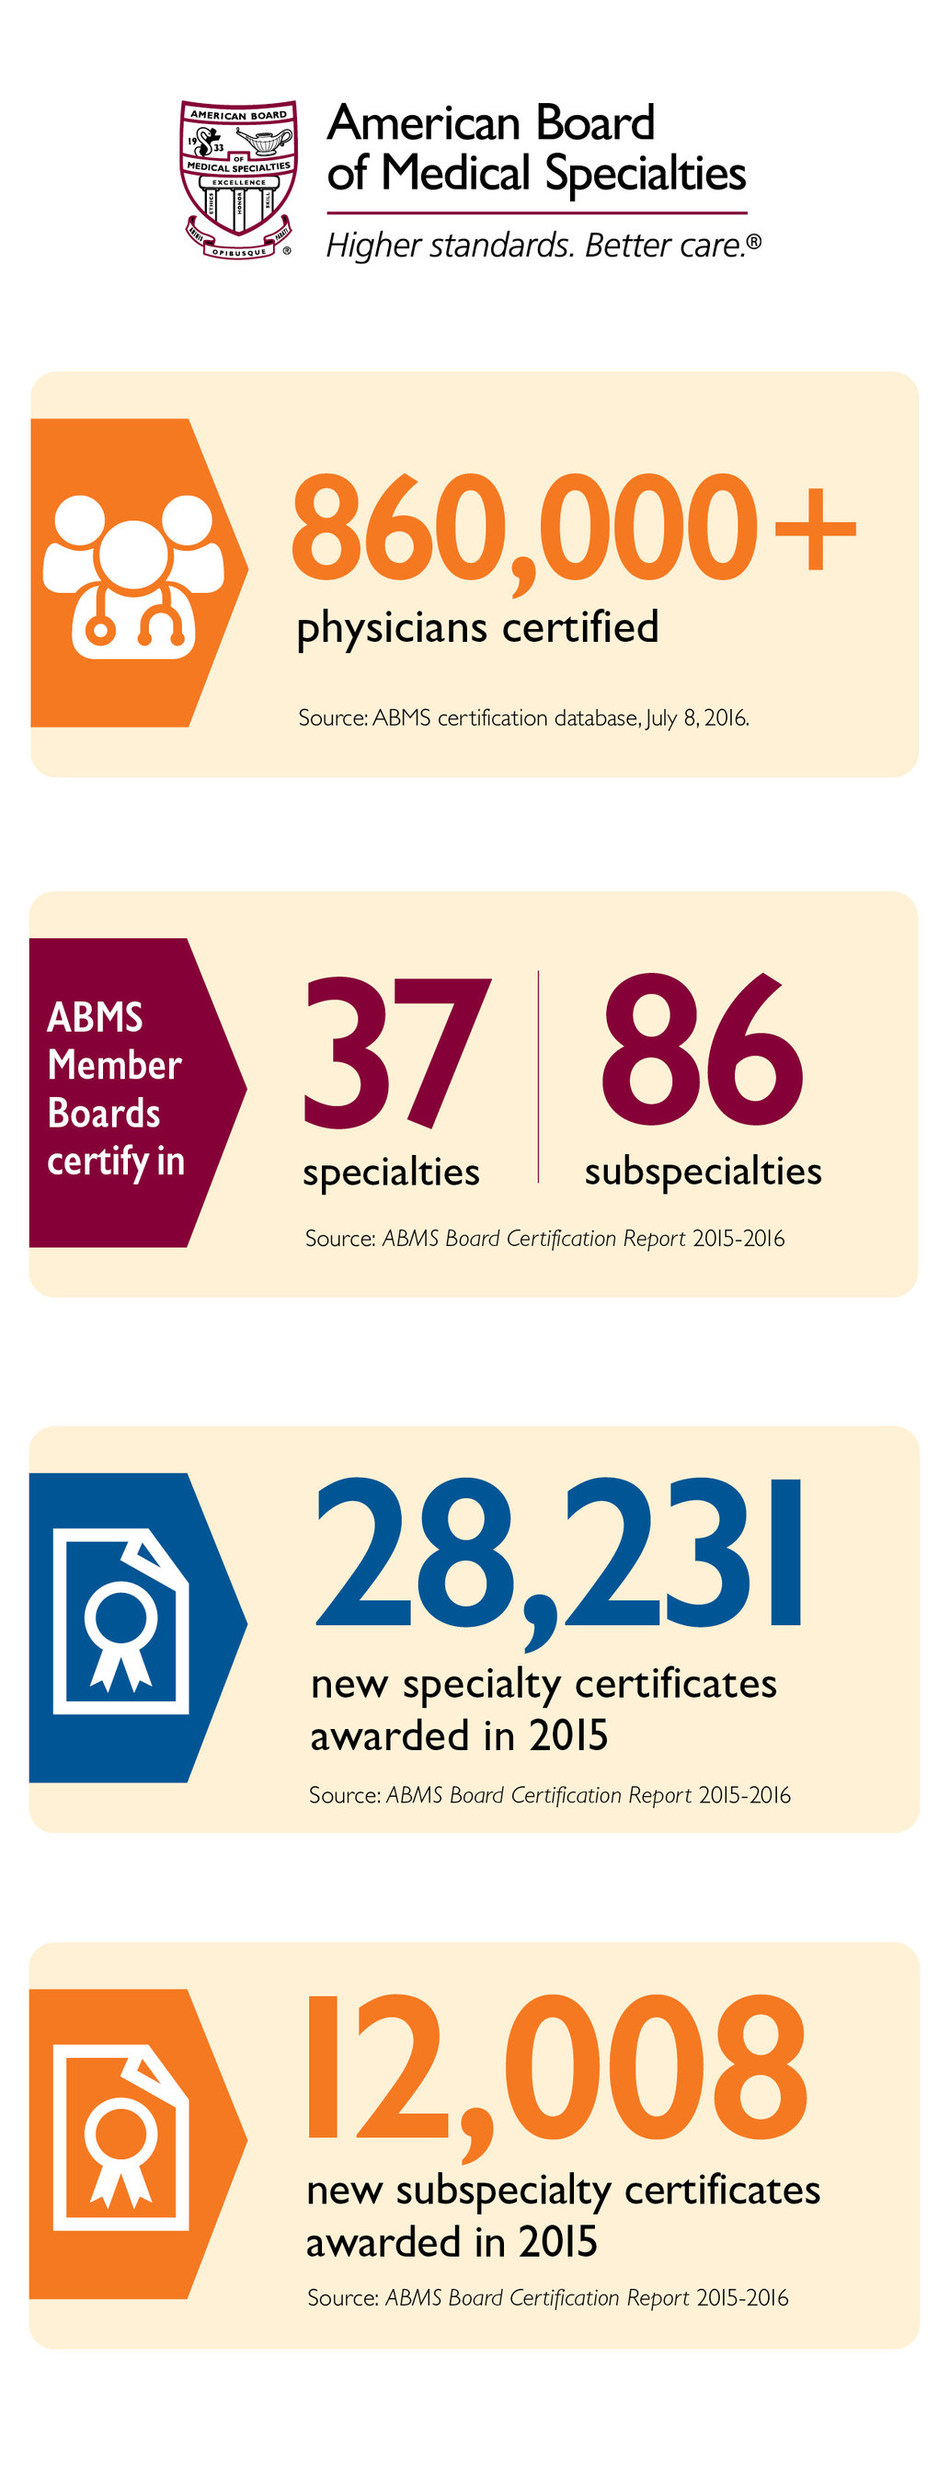 ABMS board certification is held by more than 860,000 physicians. Each year approximately 40,000 specialty and subspecialty certificates are issued to those who demonstrate mastery of core skills and knowledge related to their specialty, pass an ABMS Member Board administered exam, maintain the standards for professionalism and communication, and take part in continued assessment and learning to ensure they remain appropriately up-to-date in their field of practice.